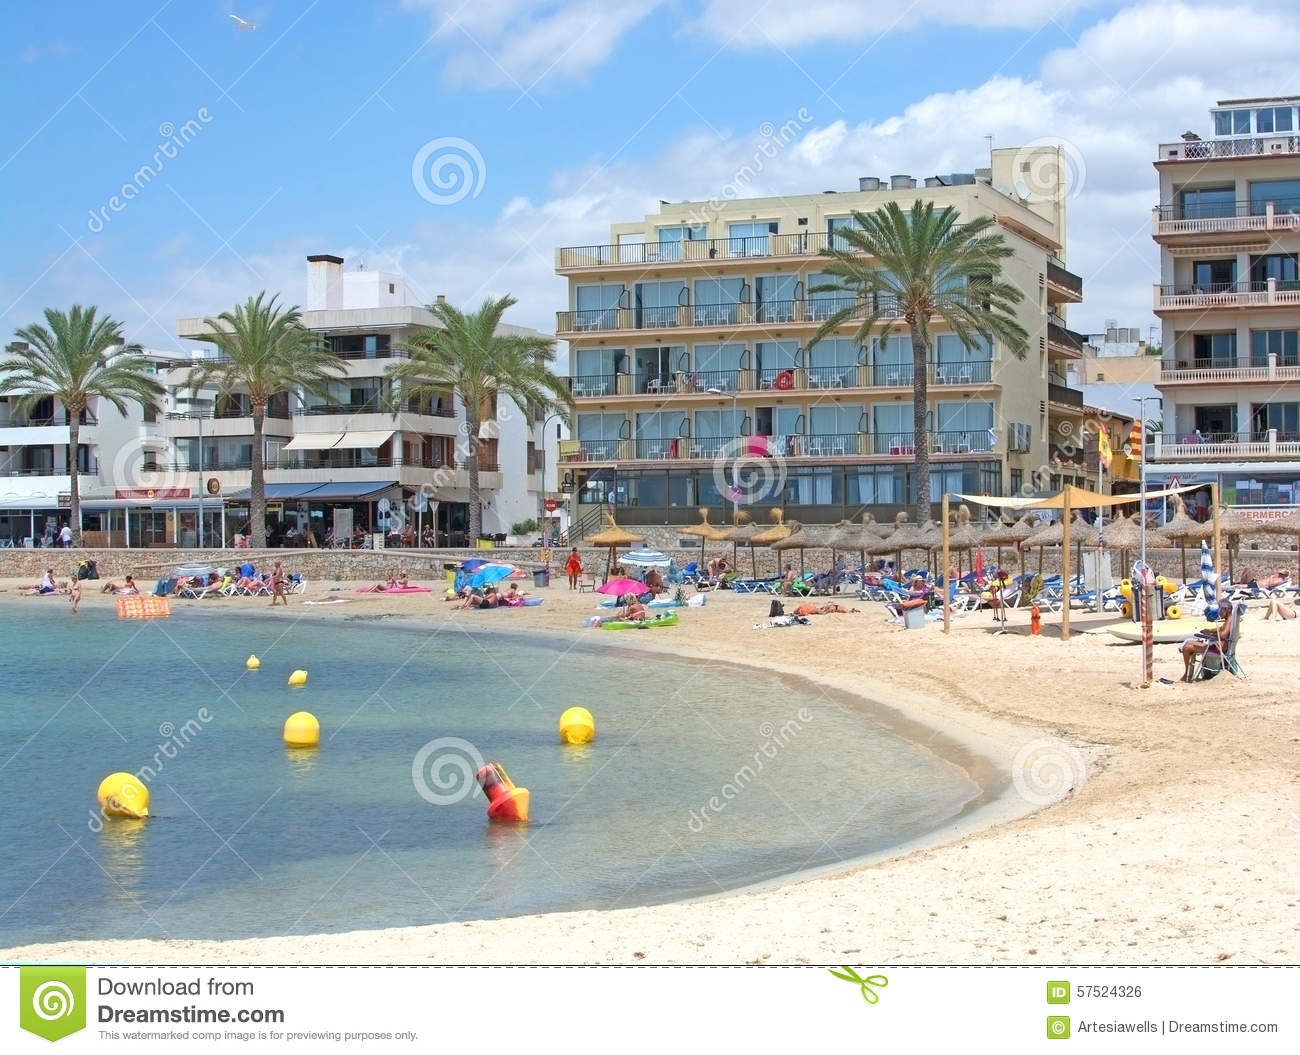 Sandy Beach At Cala Estancia Editorial Photo - Image: 57524326